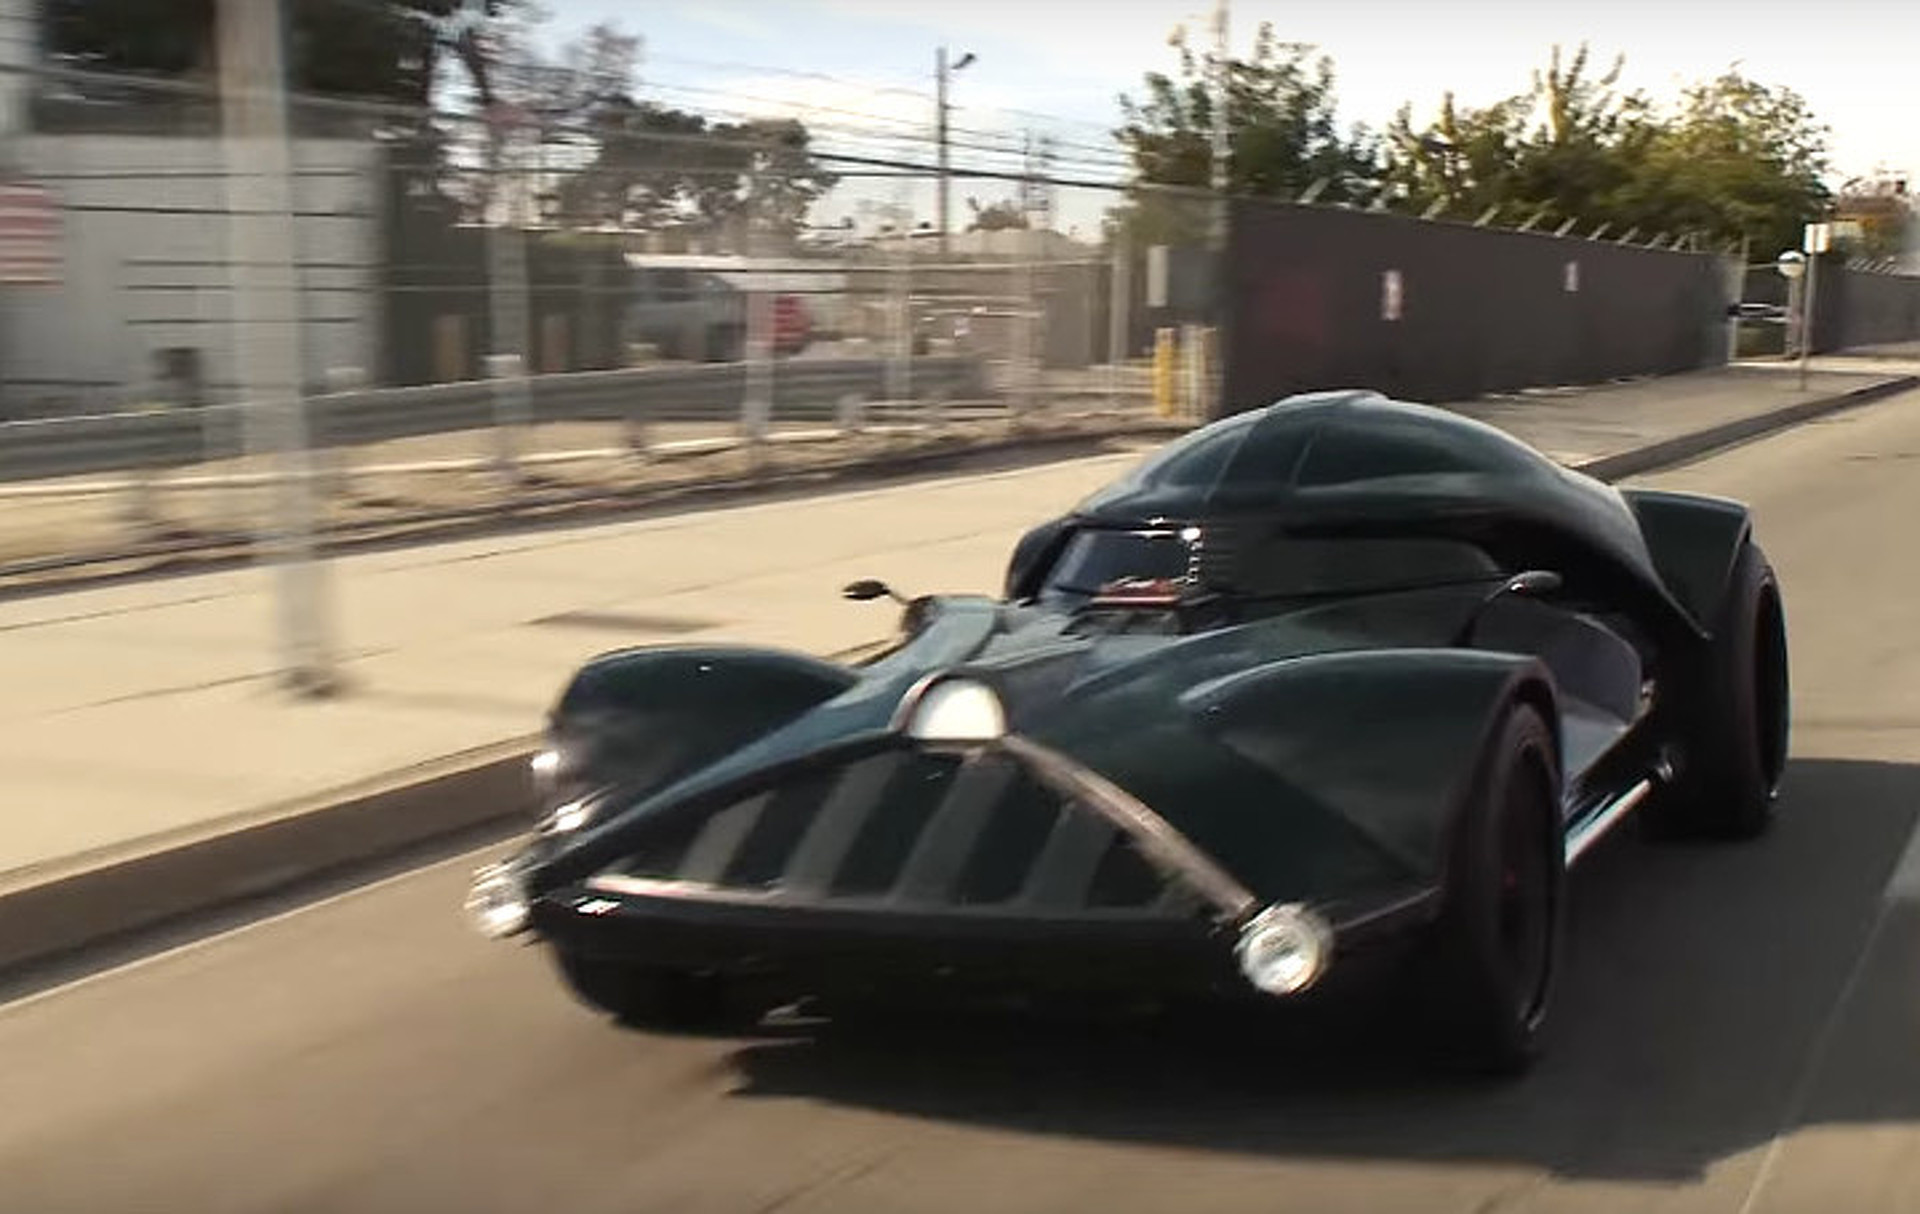 Darth Vader's Car Storms Into Jay Leno's Garage